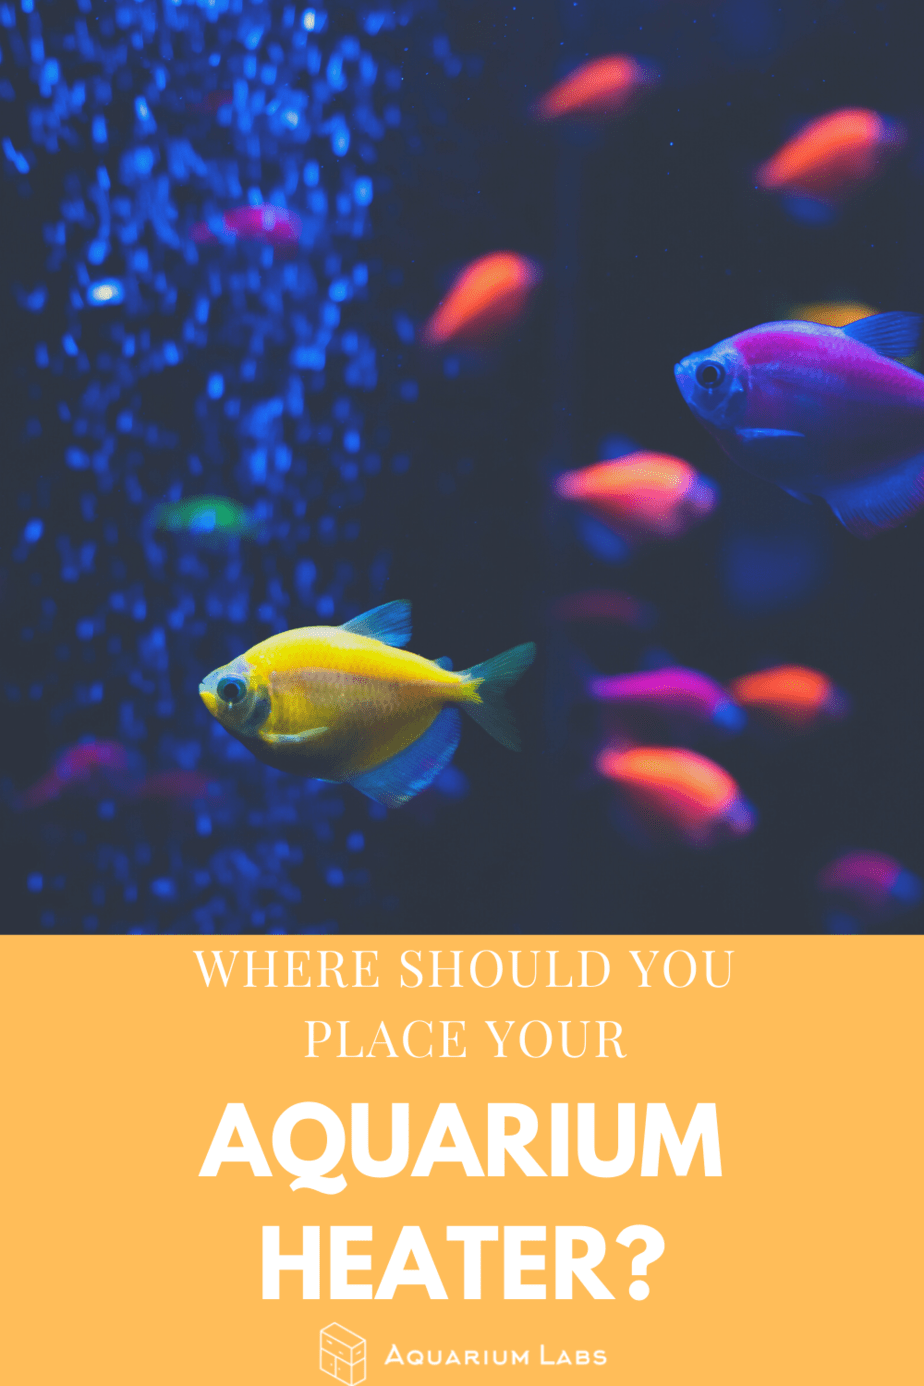 where should you place your aquarium heater